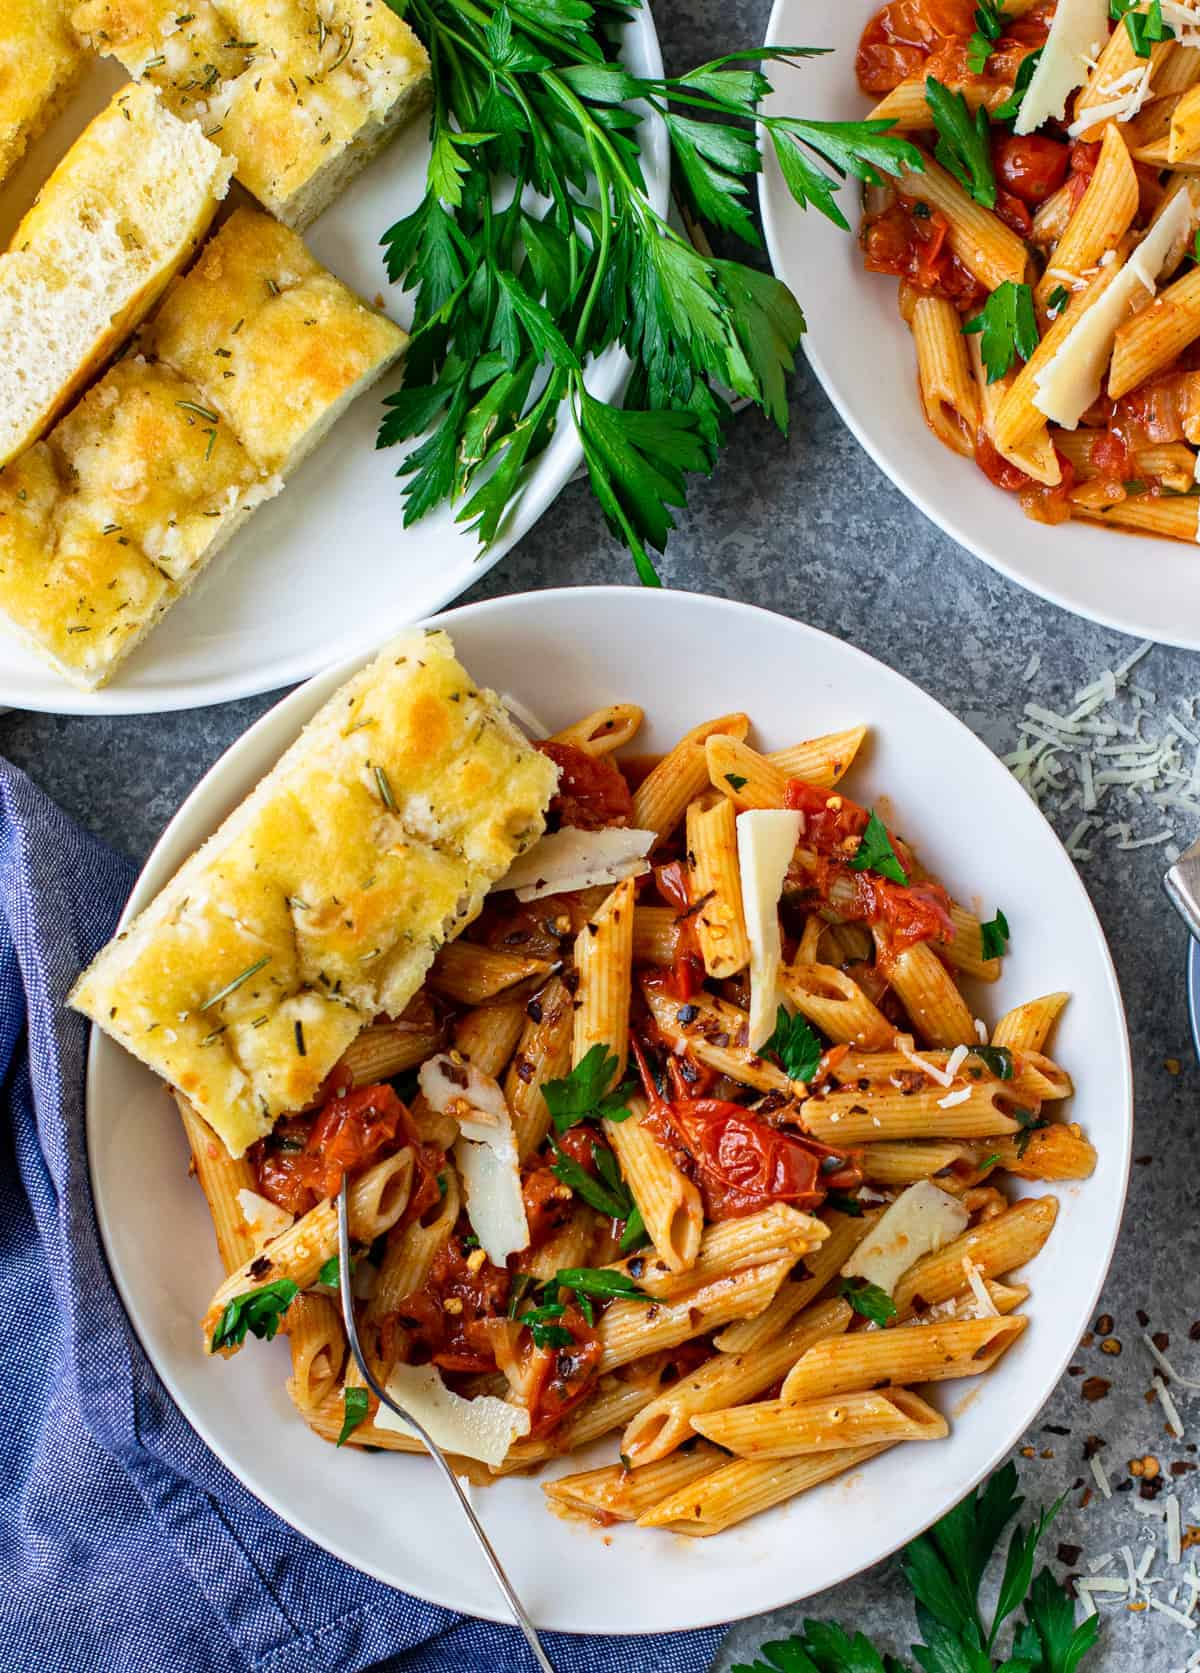 Pasta served on a white plate with some bread on the side